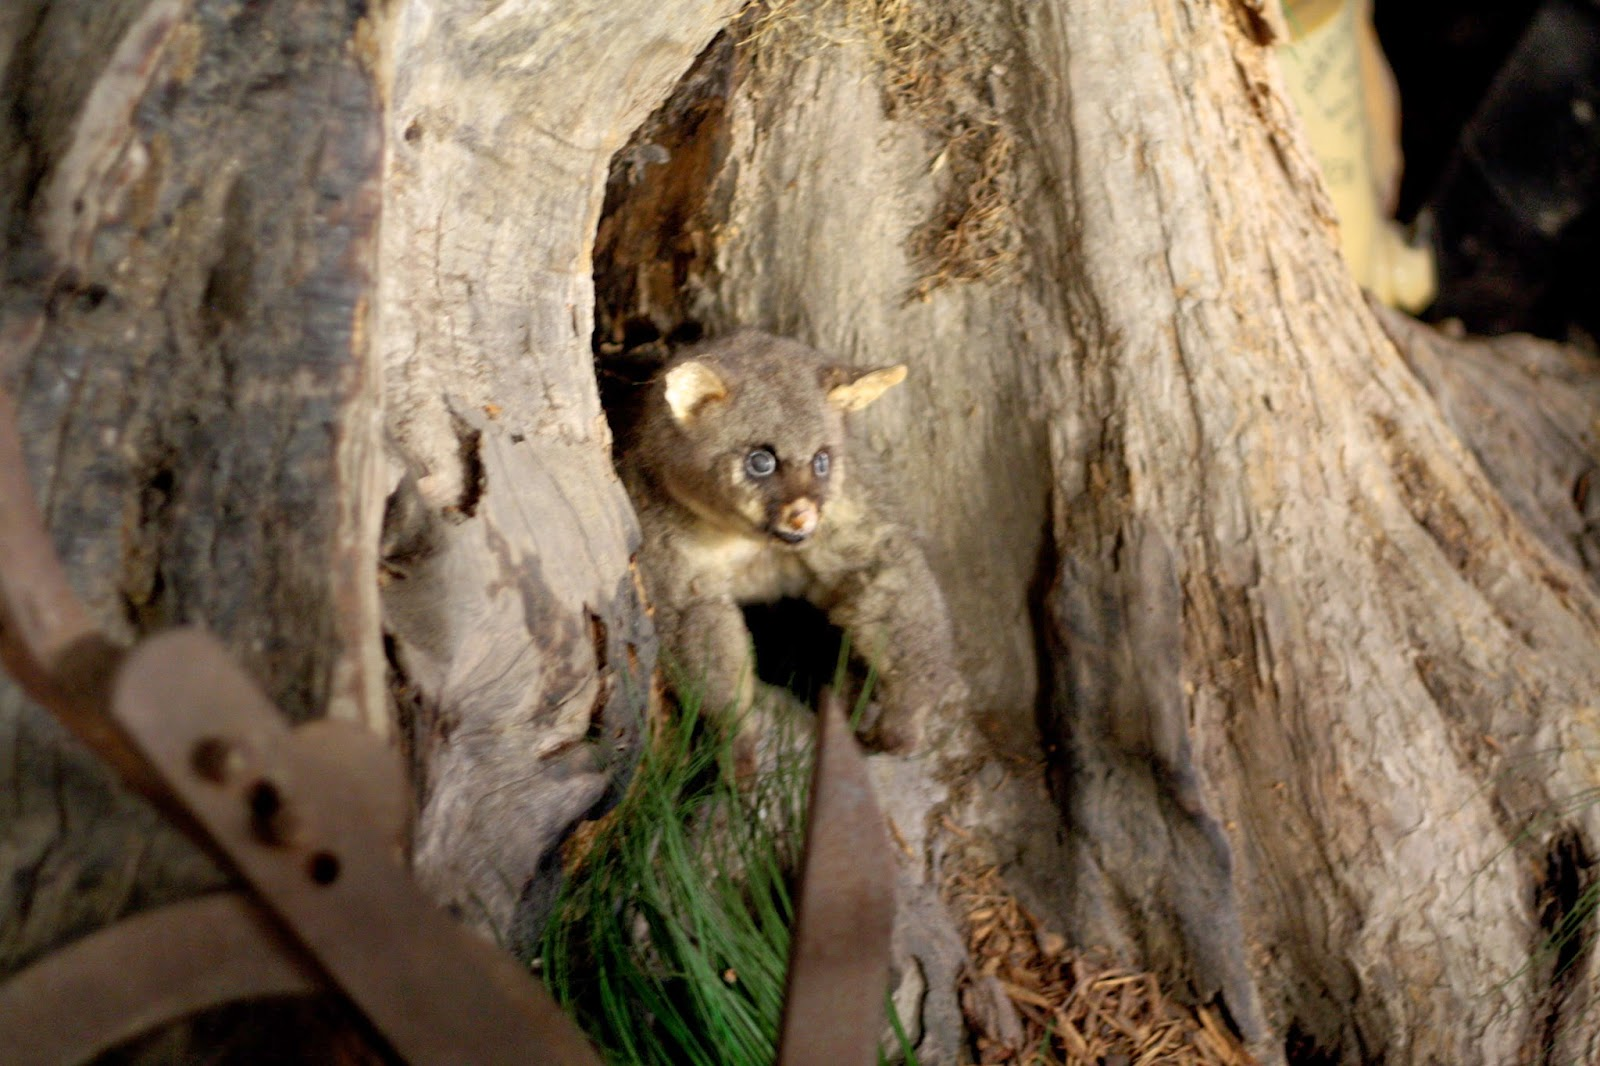 There's a taxidermied possum peeking out from a hollow in a tree.